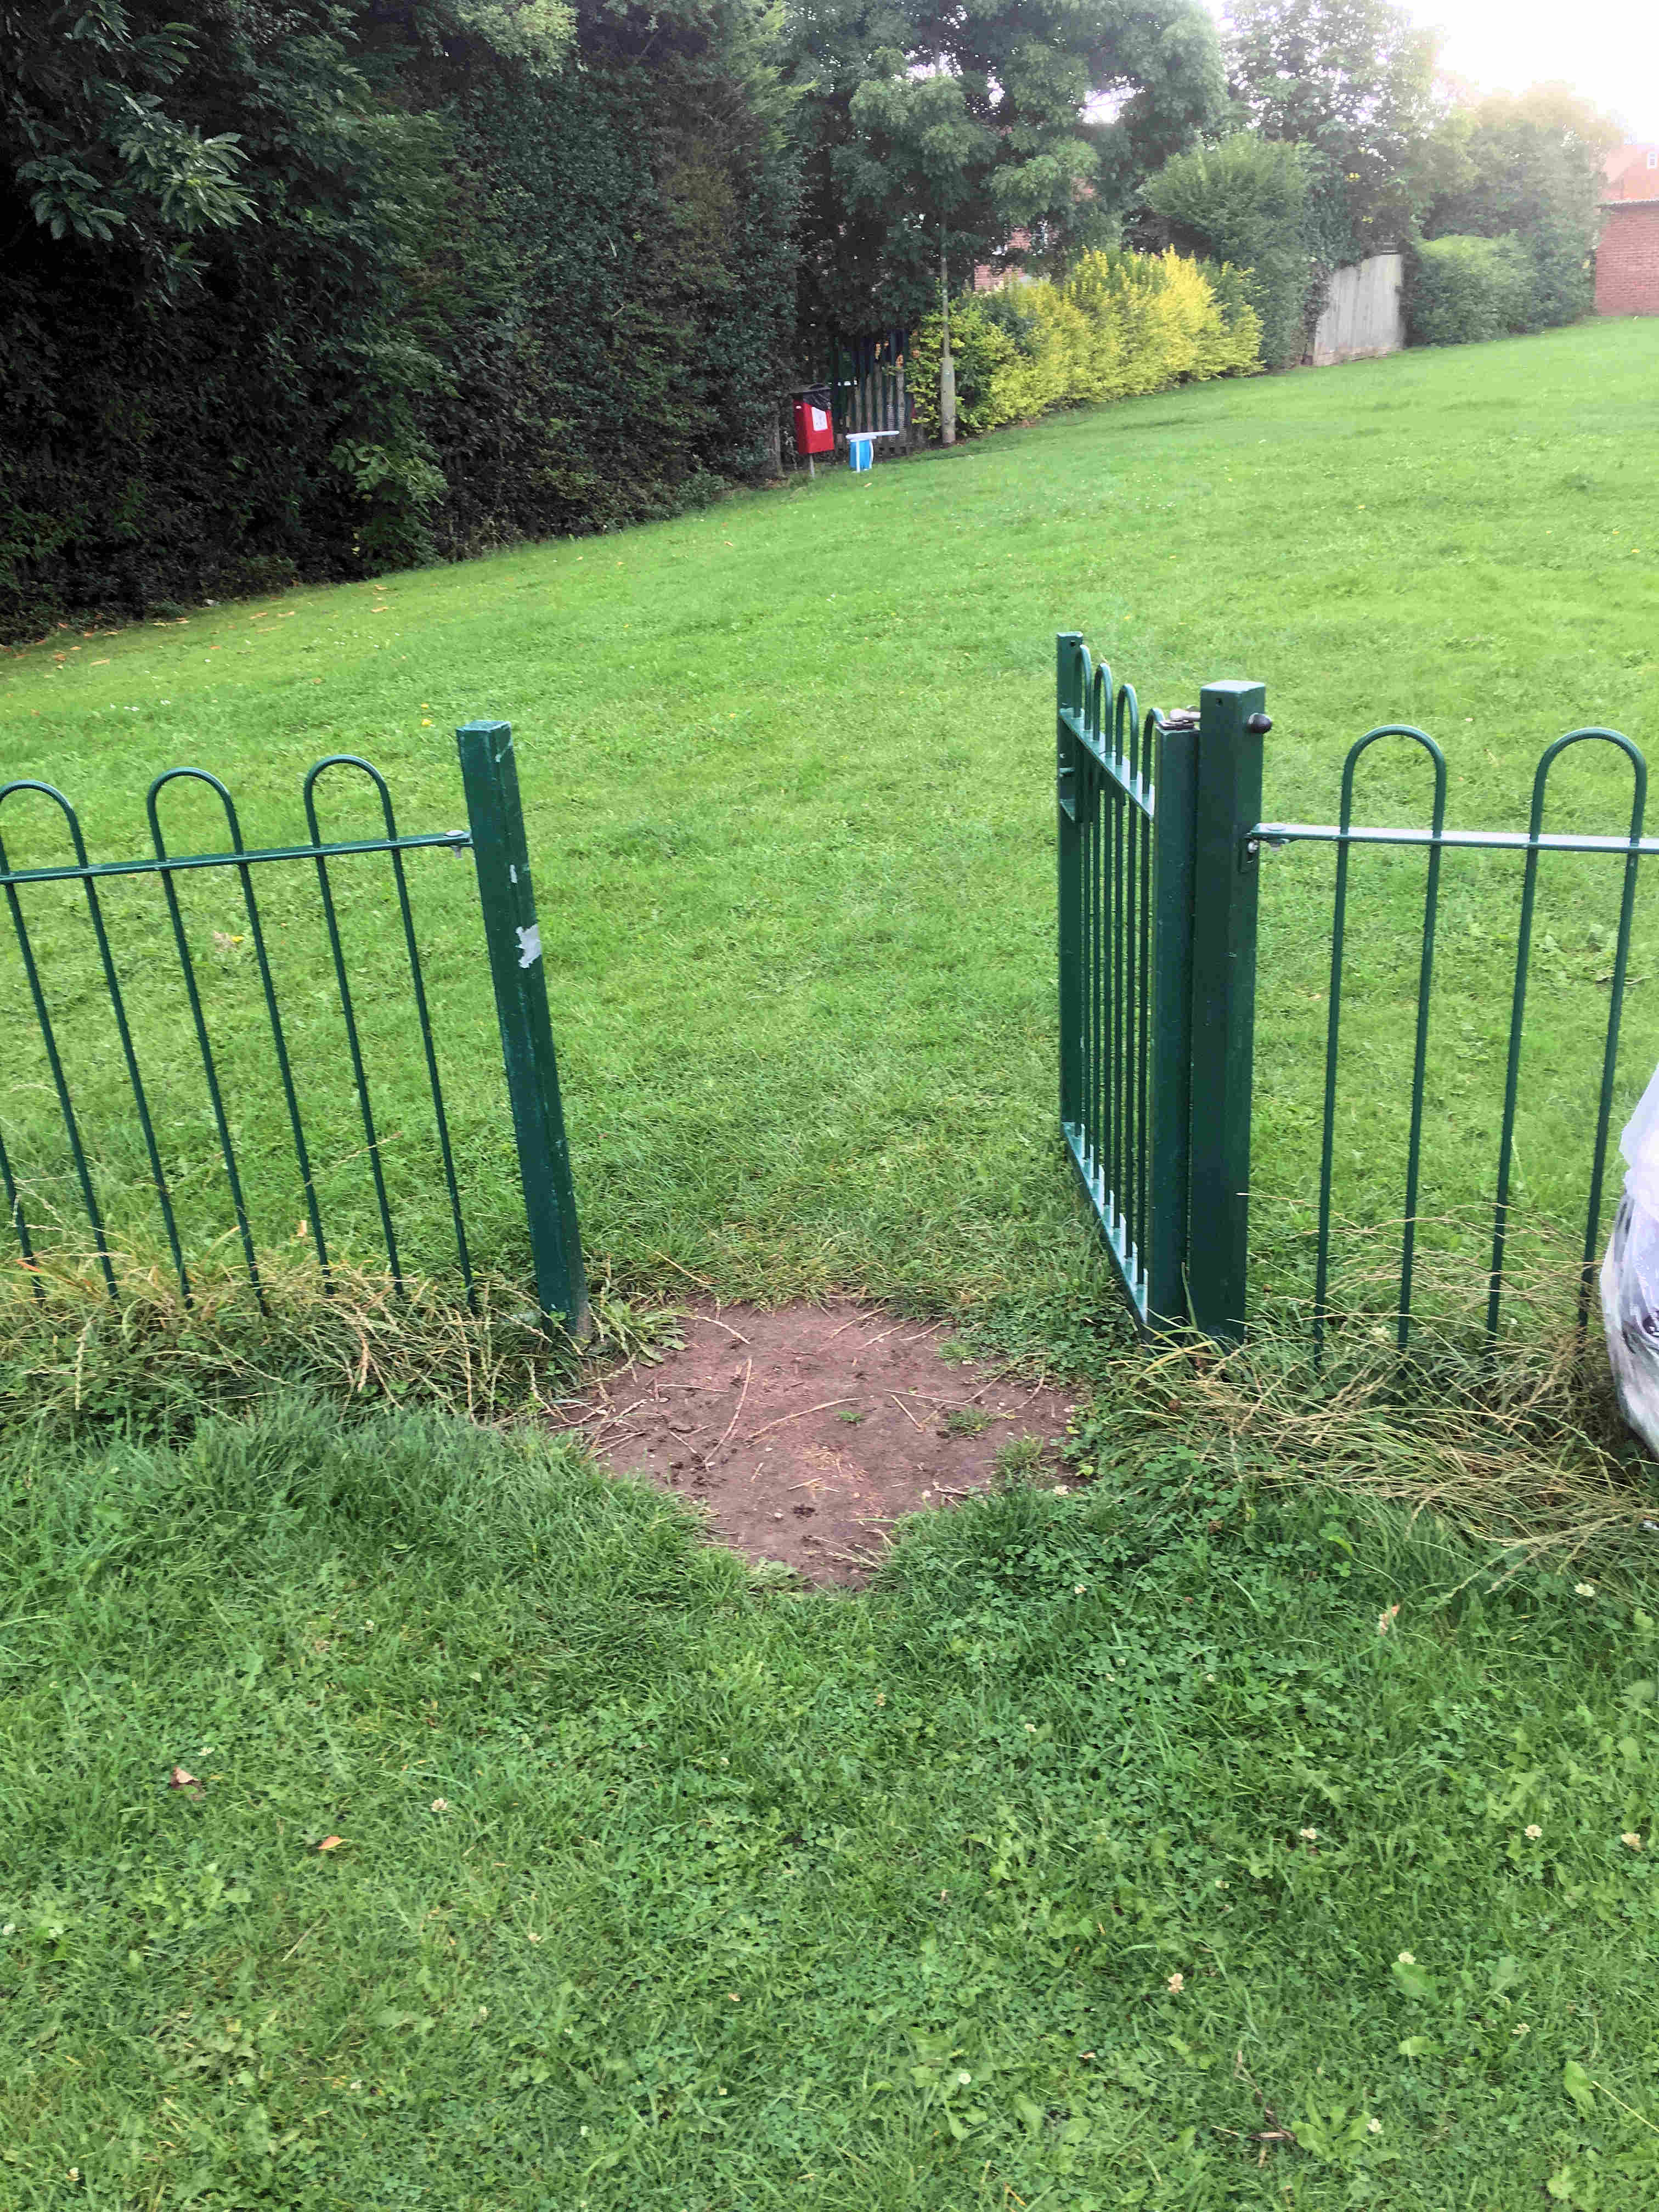 We've asked for a spring to be fitted to the railings which protects the play area in the Cornlands Road park from dogs